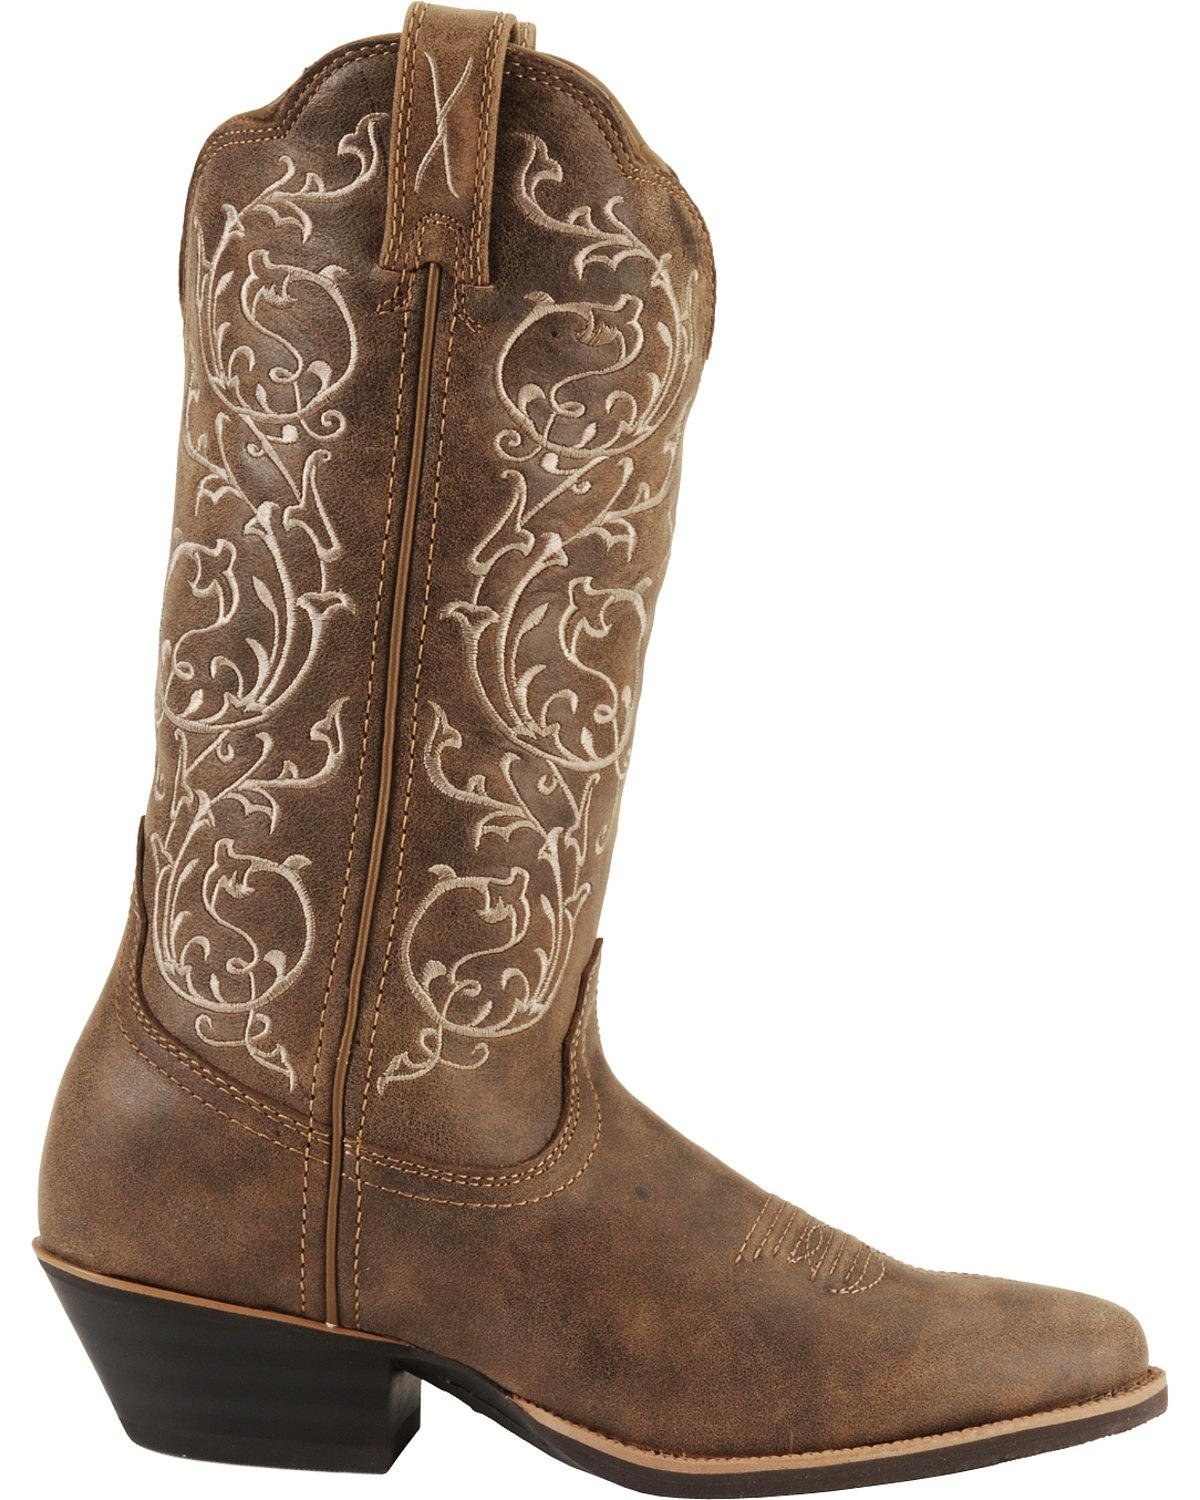 Twisted X Womens Western US|Brown Boot B00AS0BK4W 7.5 B(M) US|Brown Western 8ddbec